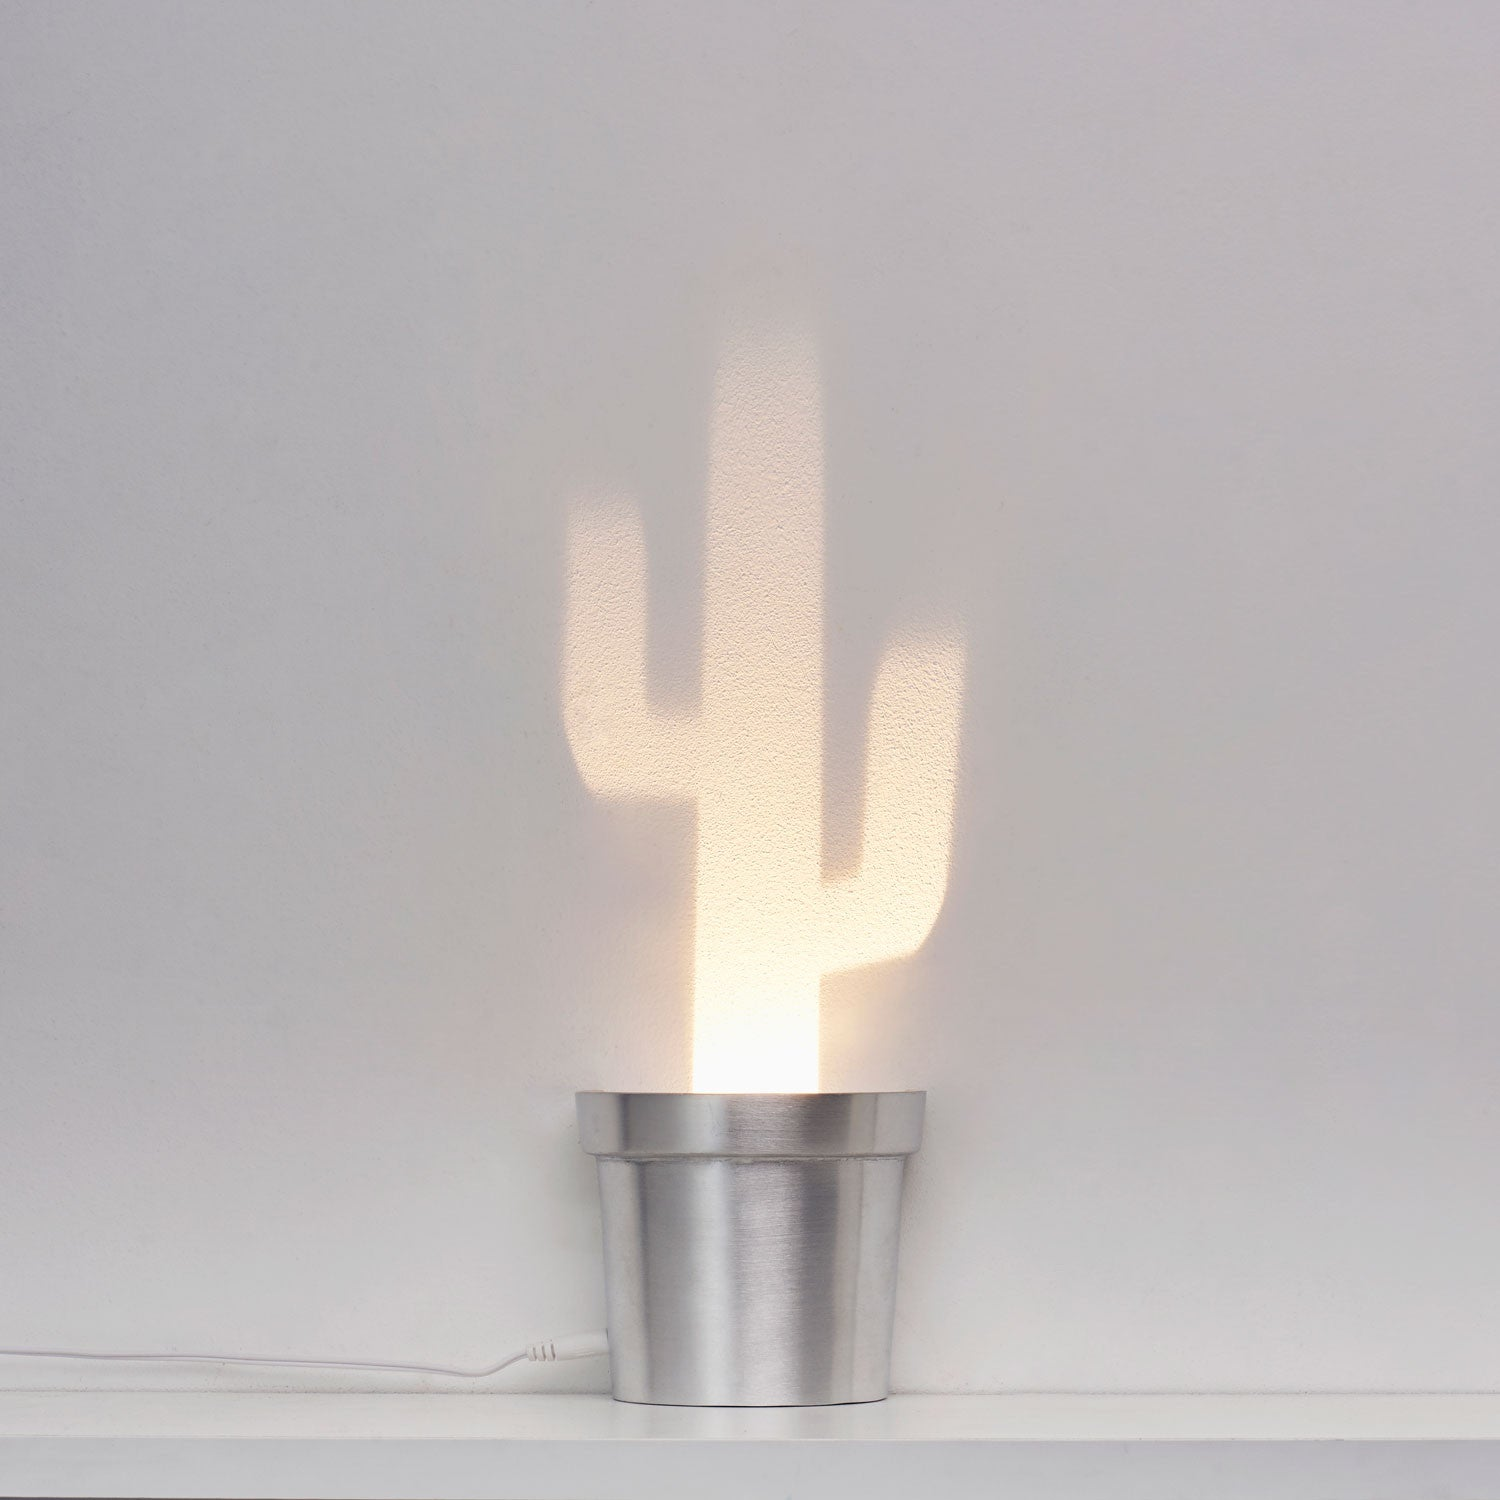 A Single Lamp Made Aluminum Containing 3 Different Cactus Shapes